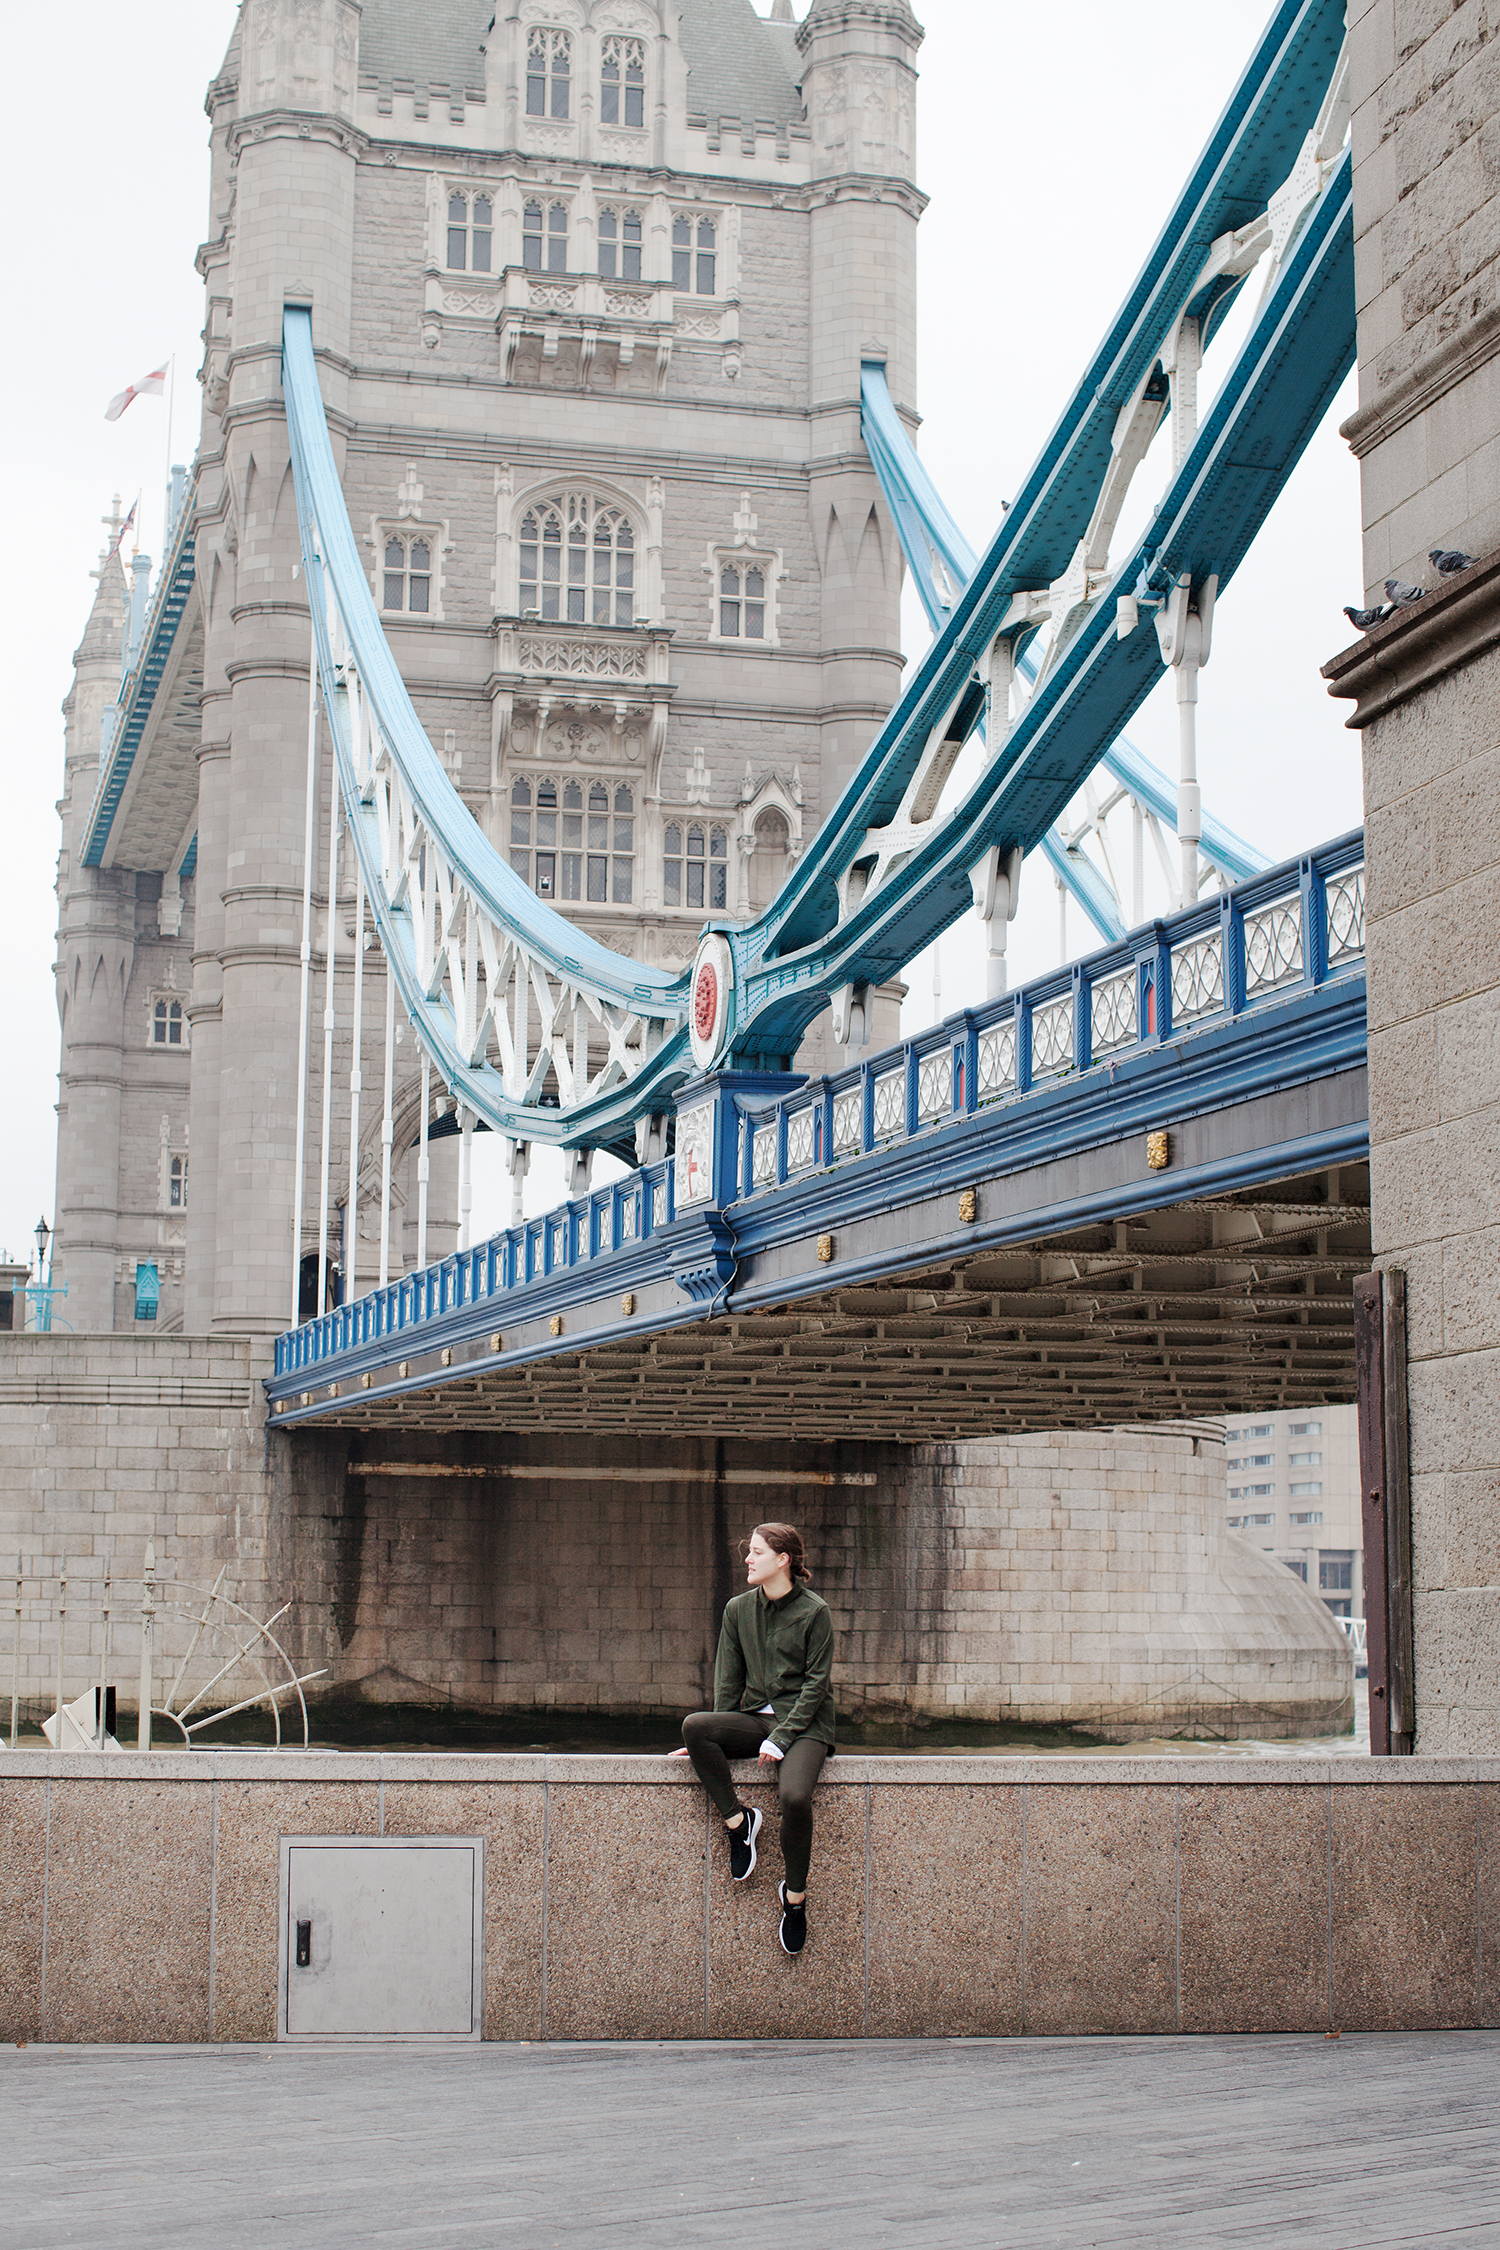 Tower-Bridge-london-Nike-Luna-Epic